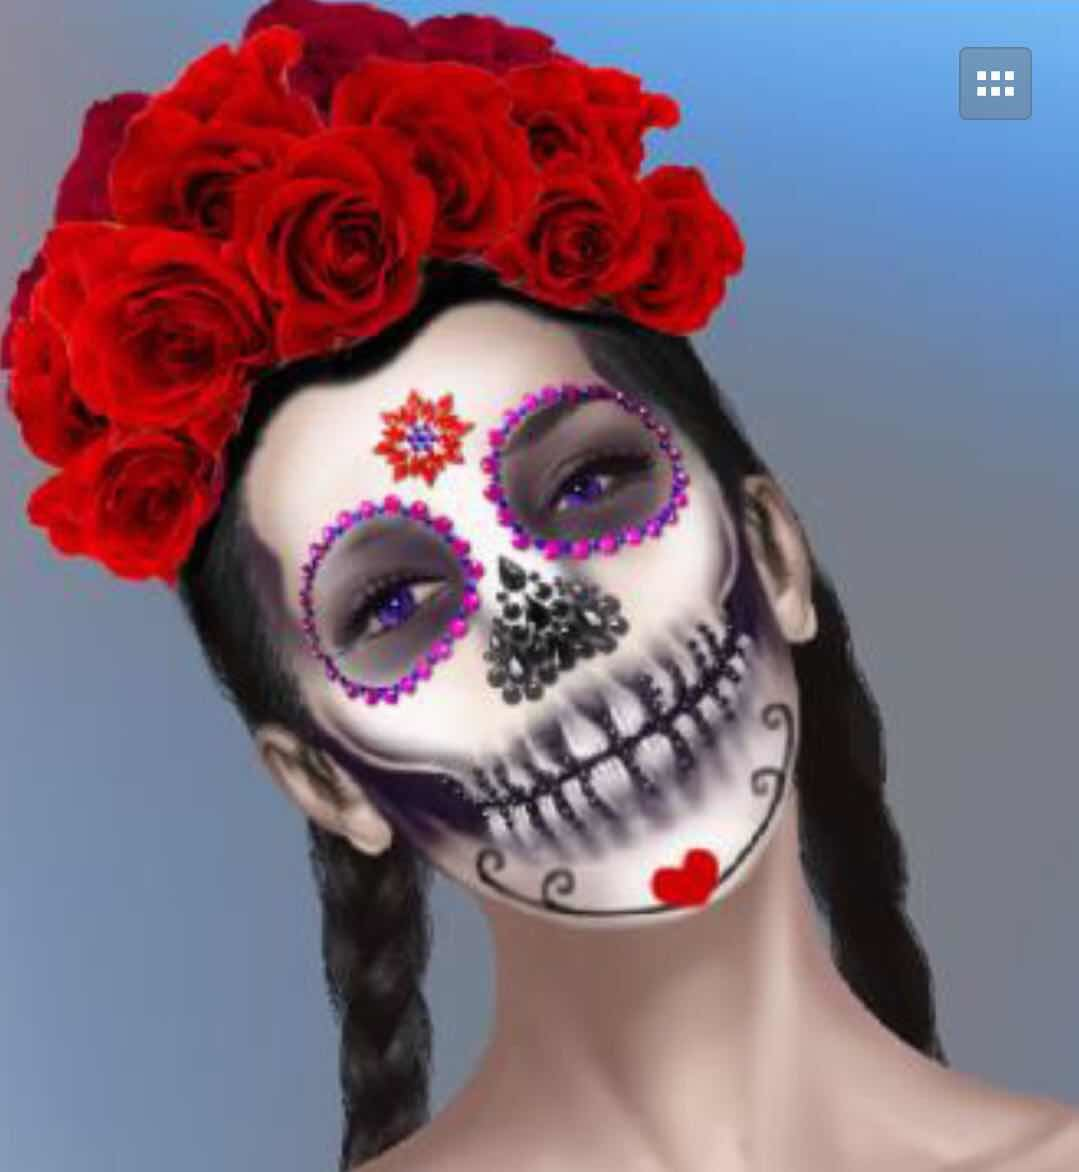 406bbd39a Halloween Gem Jewel Temporary Tattoos Face Art Day of the Dead Sugar ...